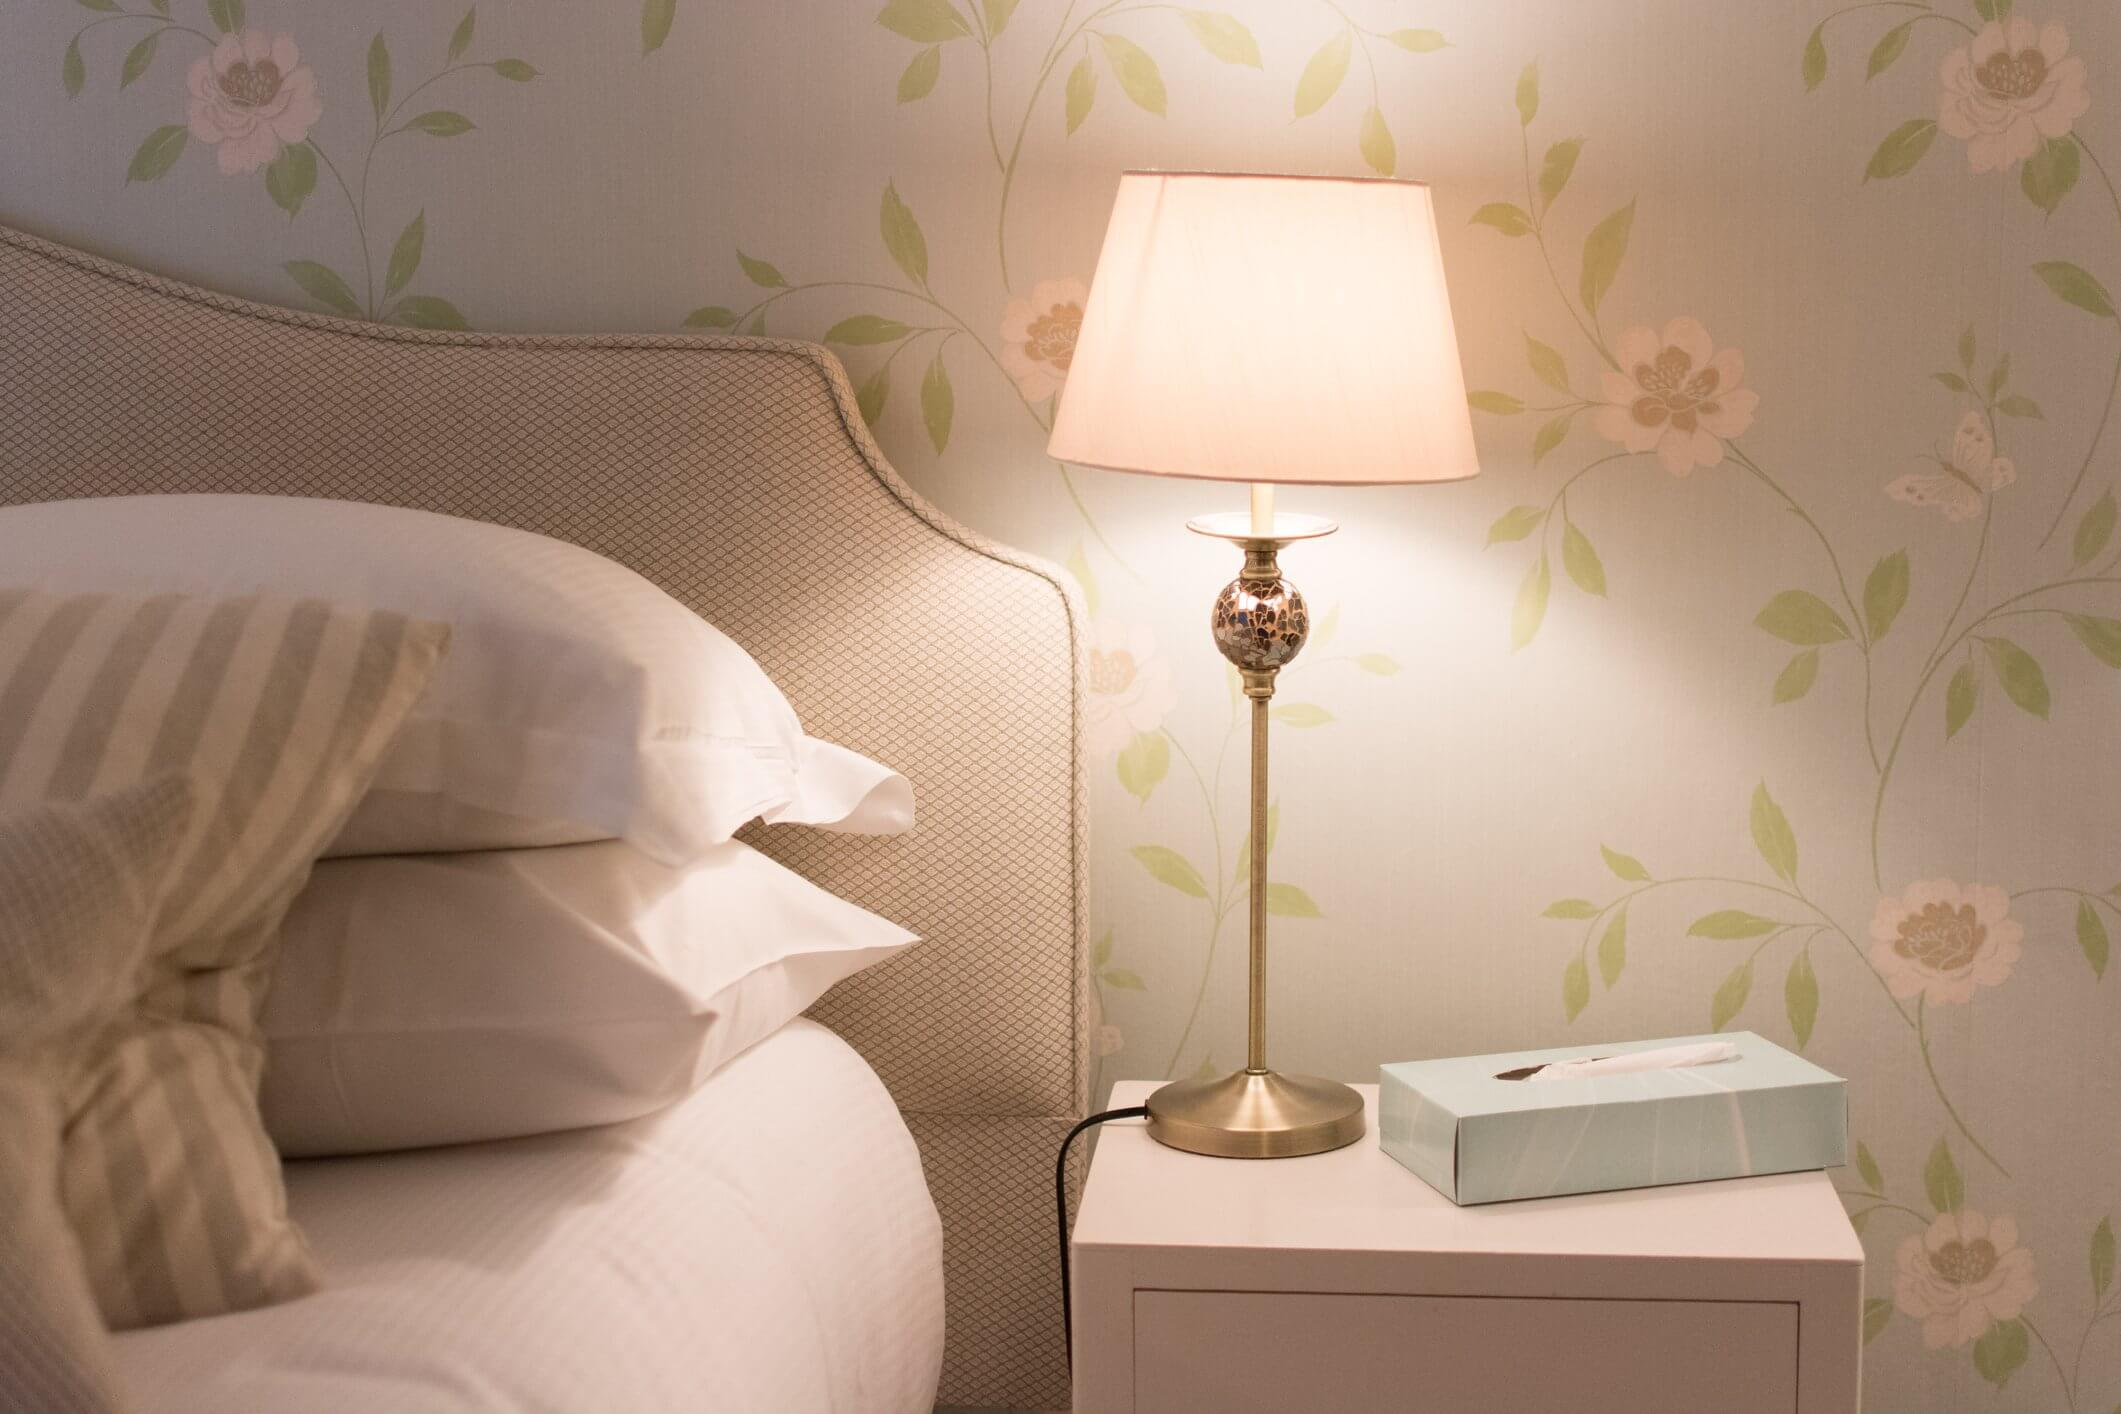 a lamp beside the bed